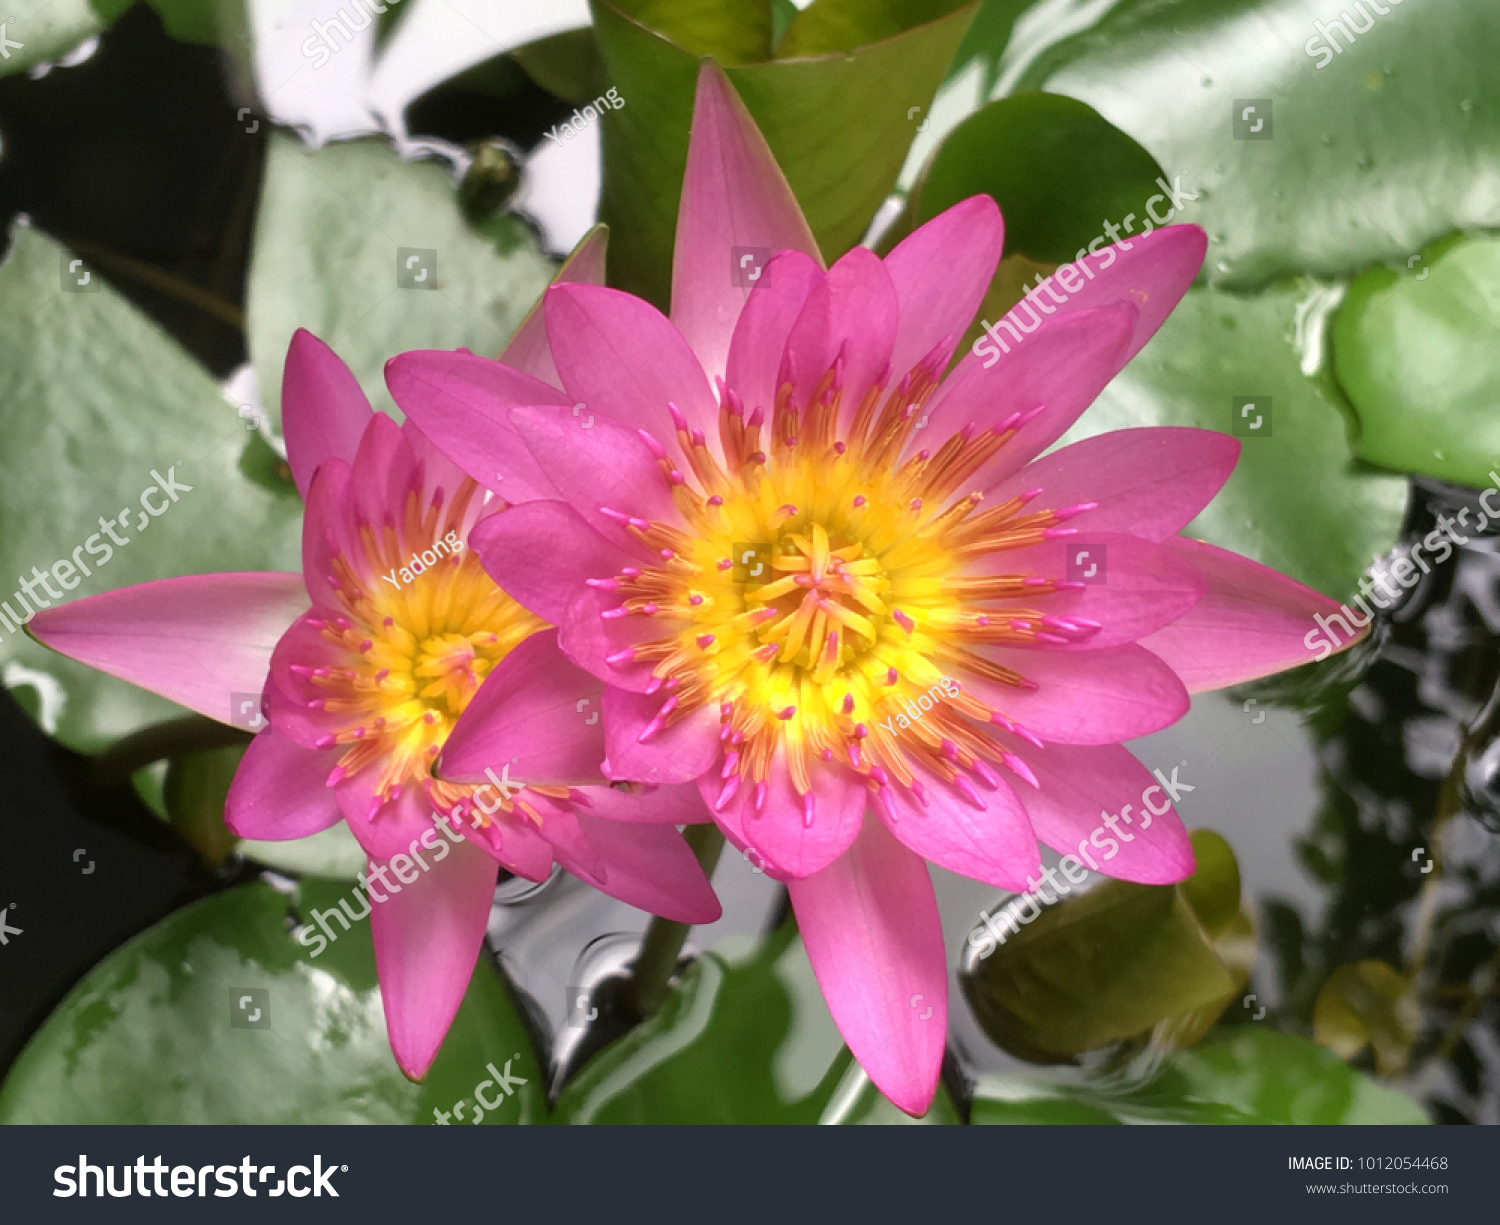 Top view of pink beautiful lotus flower ez canvas id 1012054468 izmirmasajfo